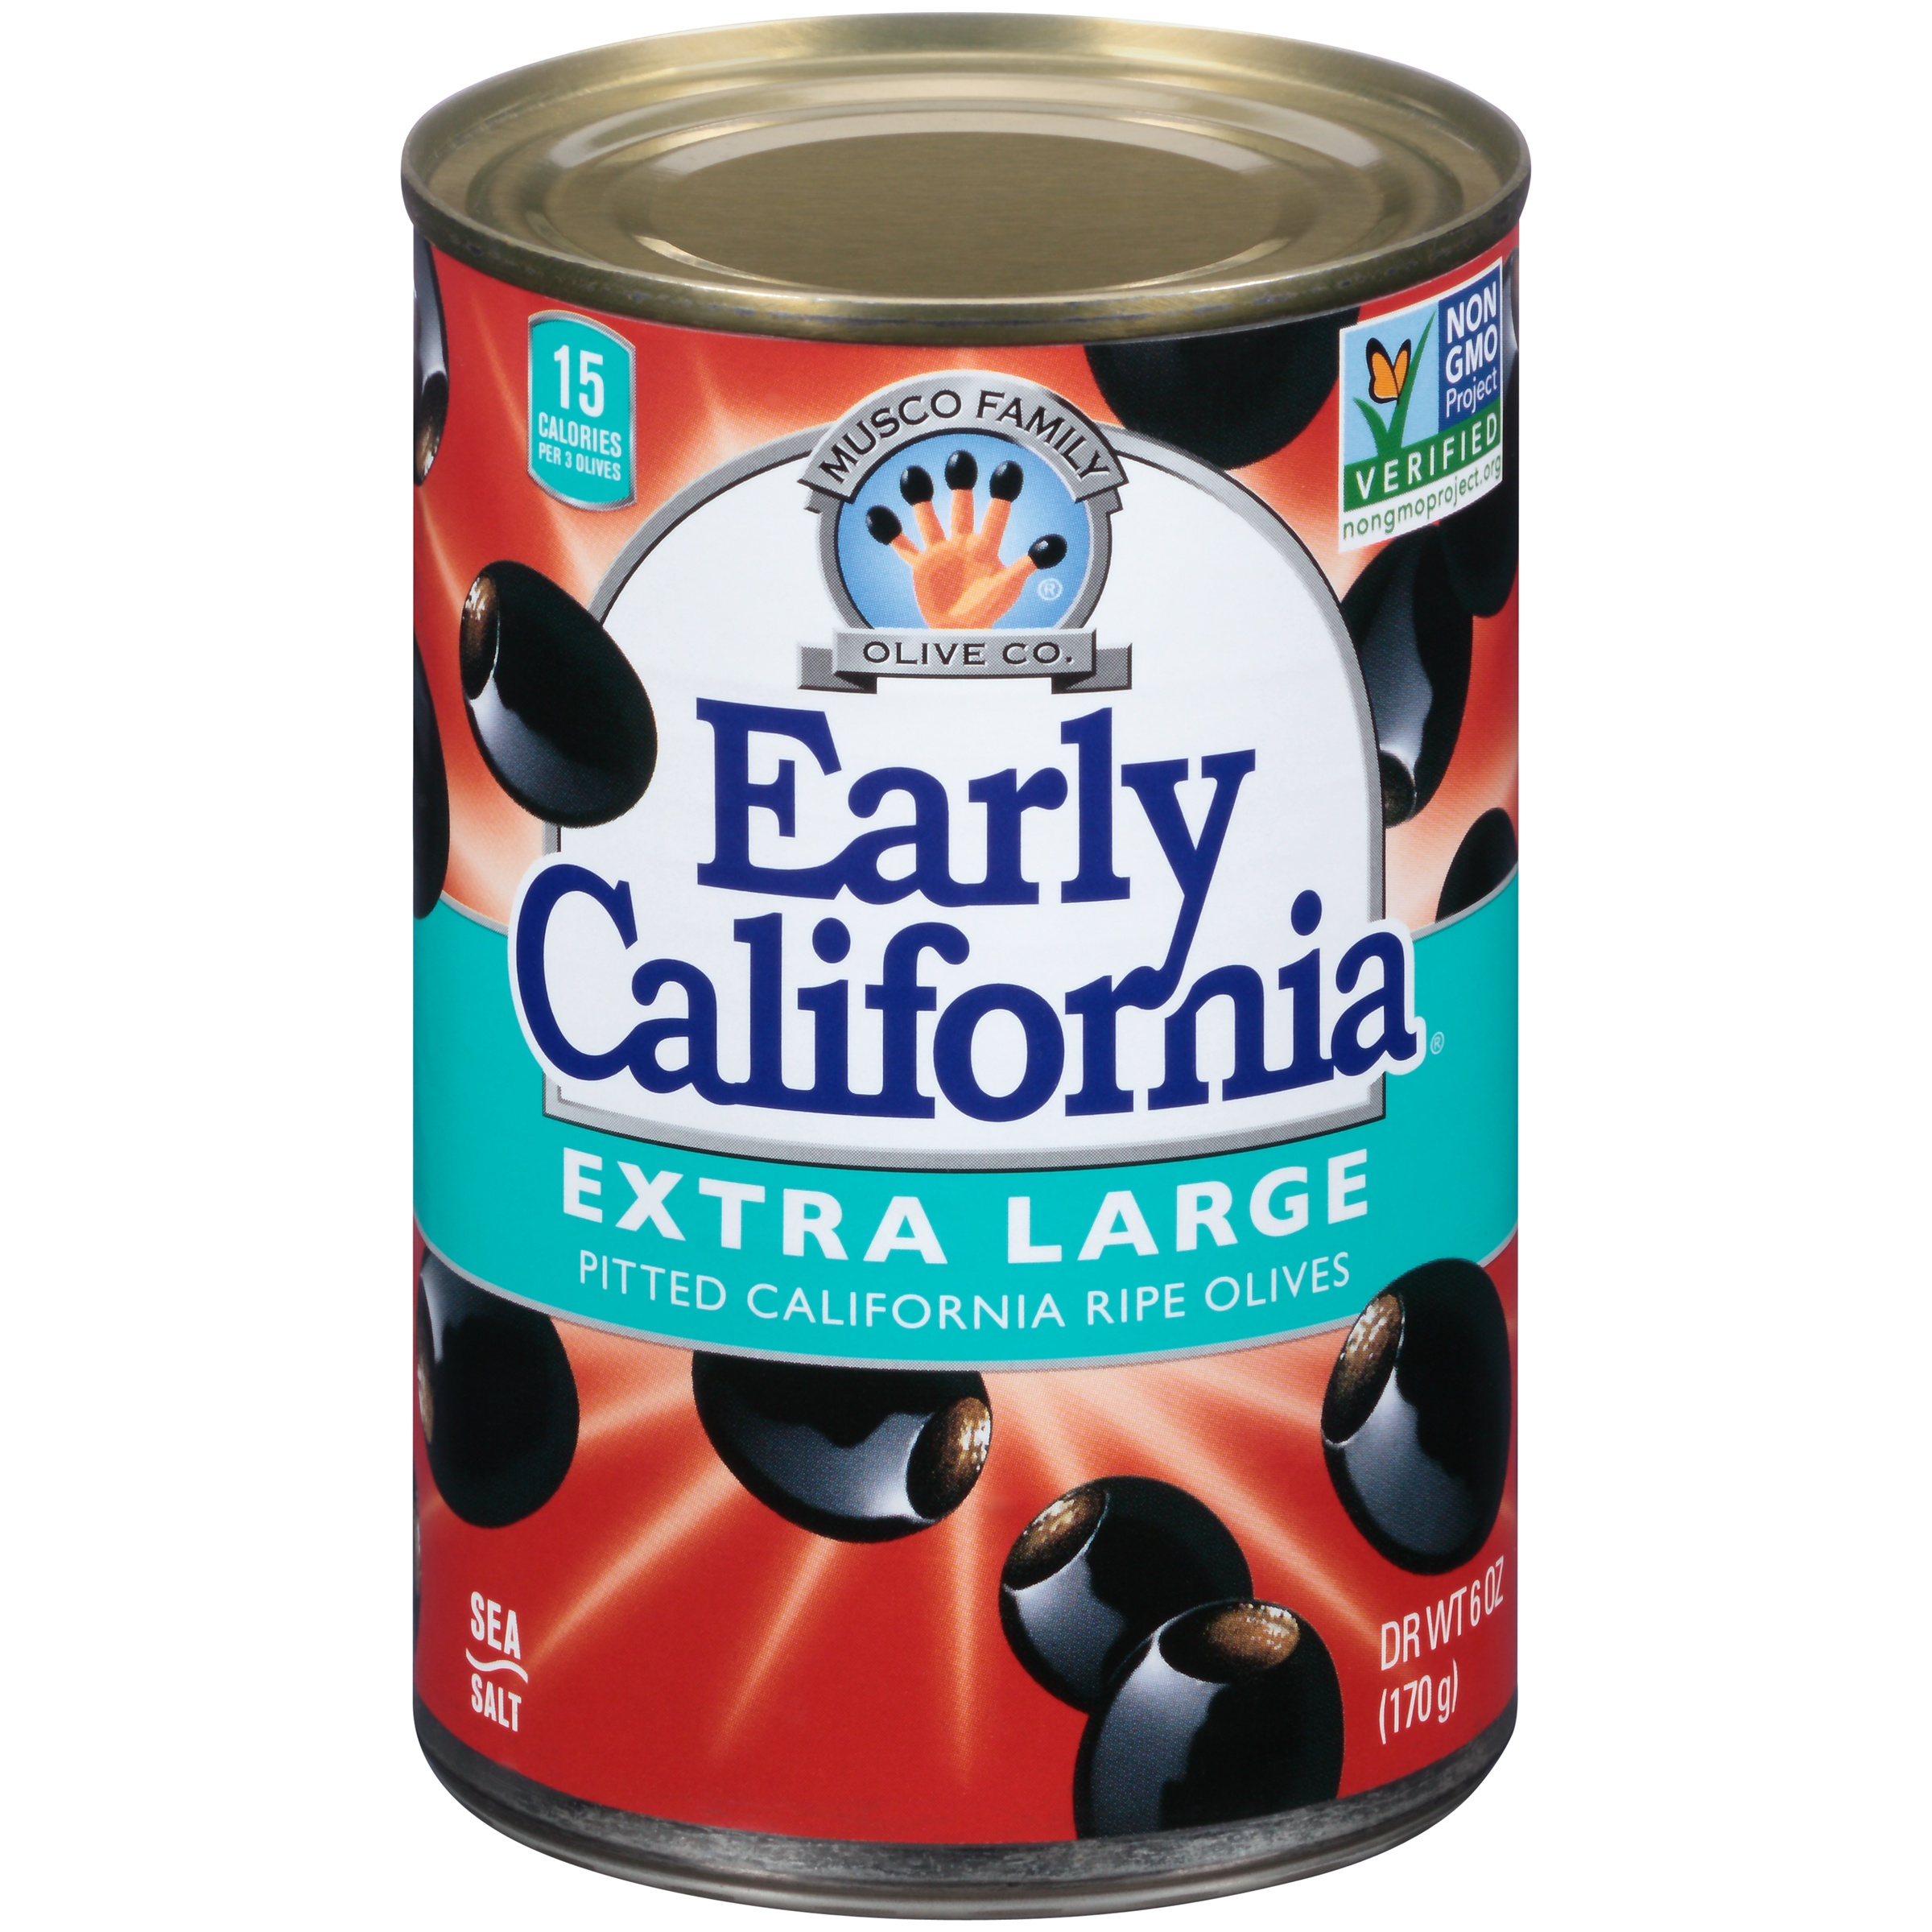 Early California Extra Large Pitted California Ripe Olives 6 oz. Can by Musco Family Olives Co.